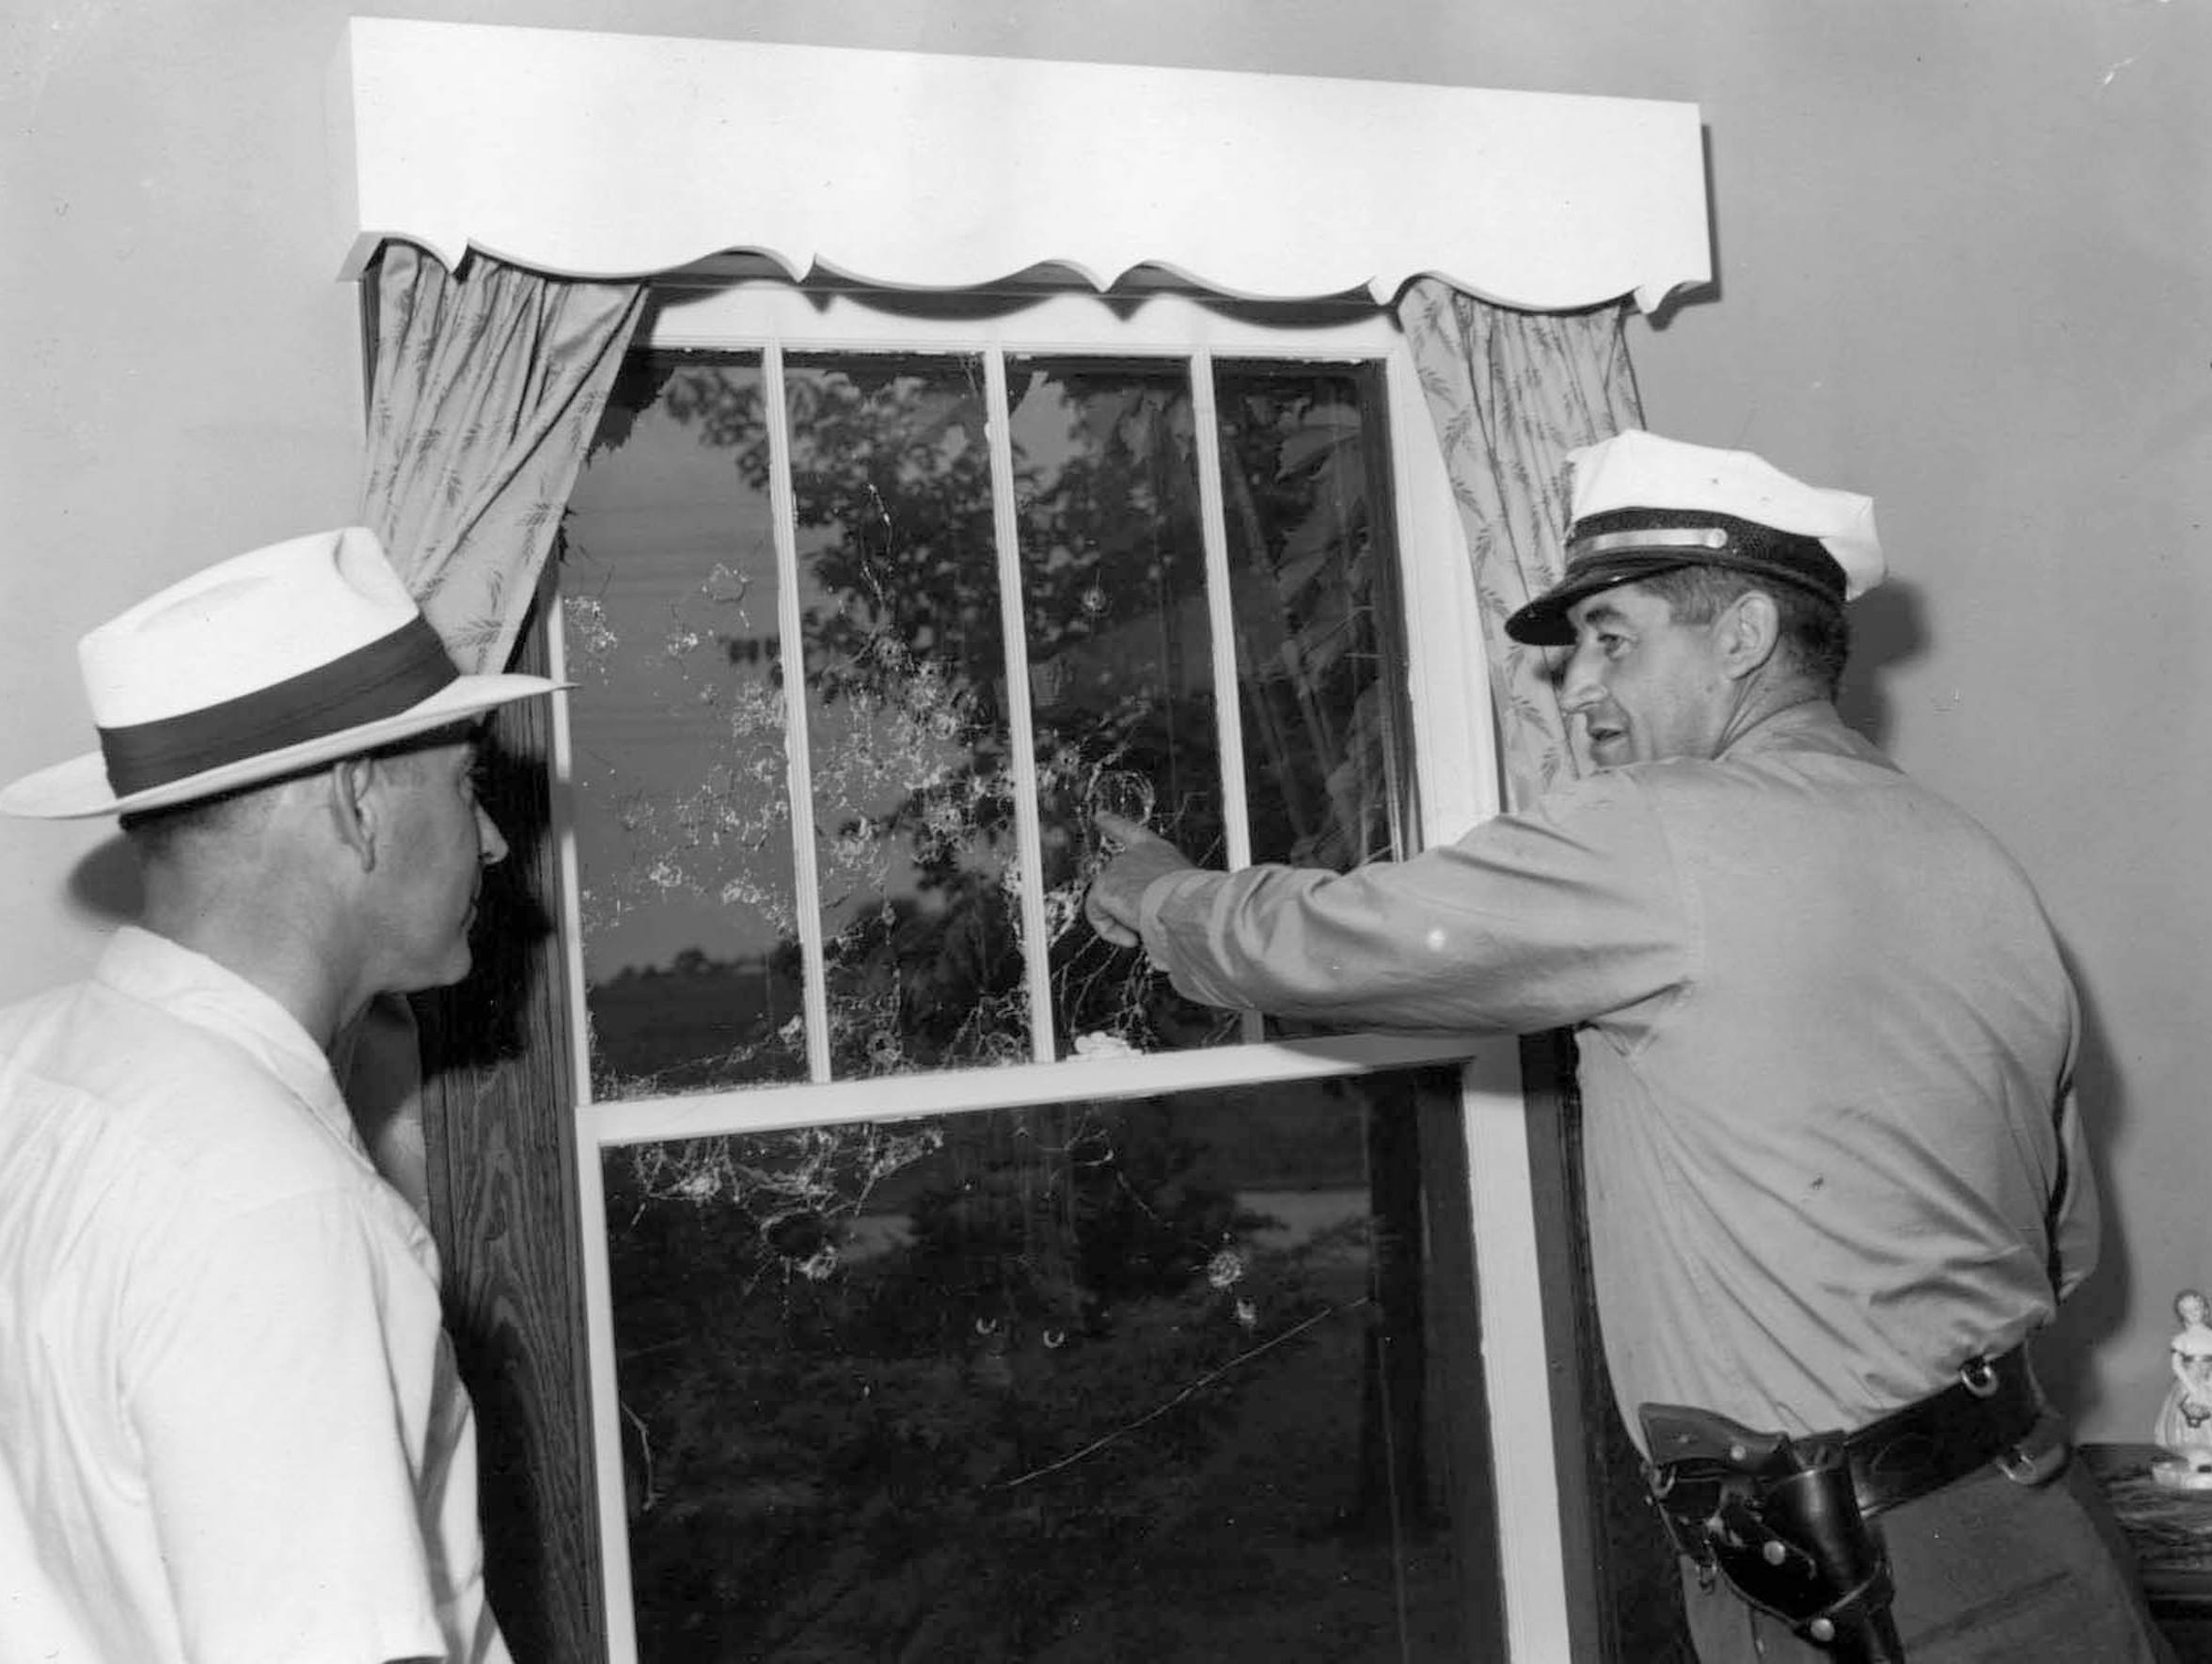 6-29-1954